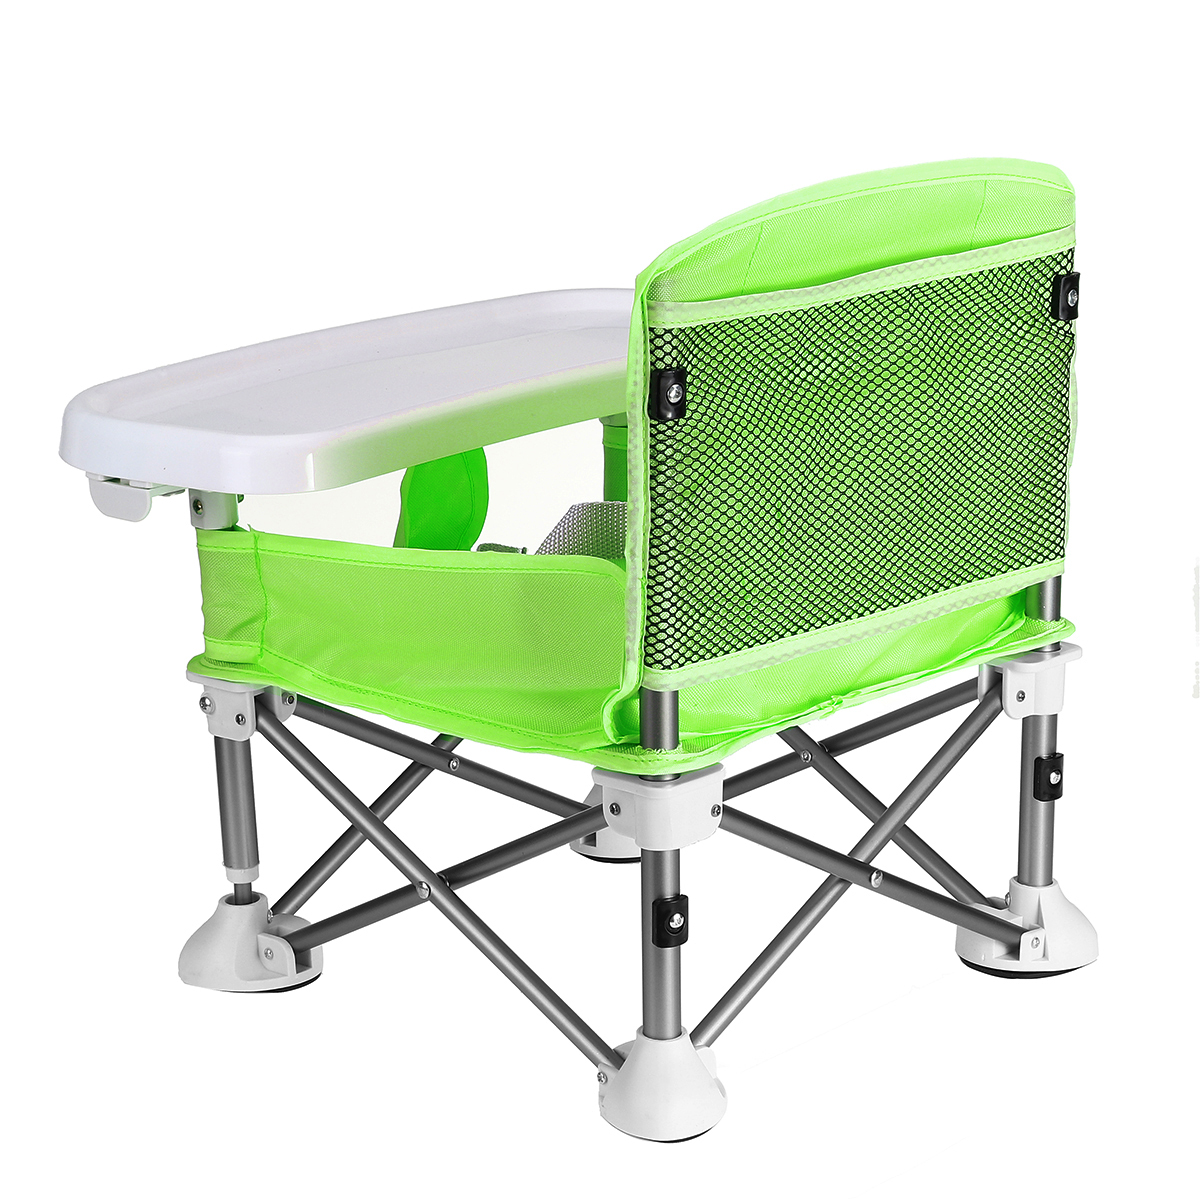 Baby's Foldable Eating Table Multi-function Aluminium Alloy Portable Dining Seats for Outdoor Outings Home Supplies